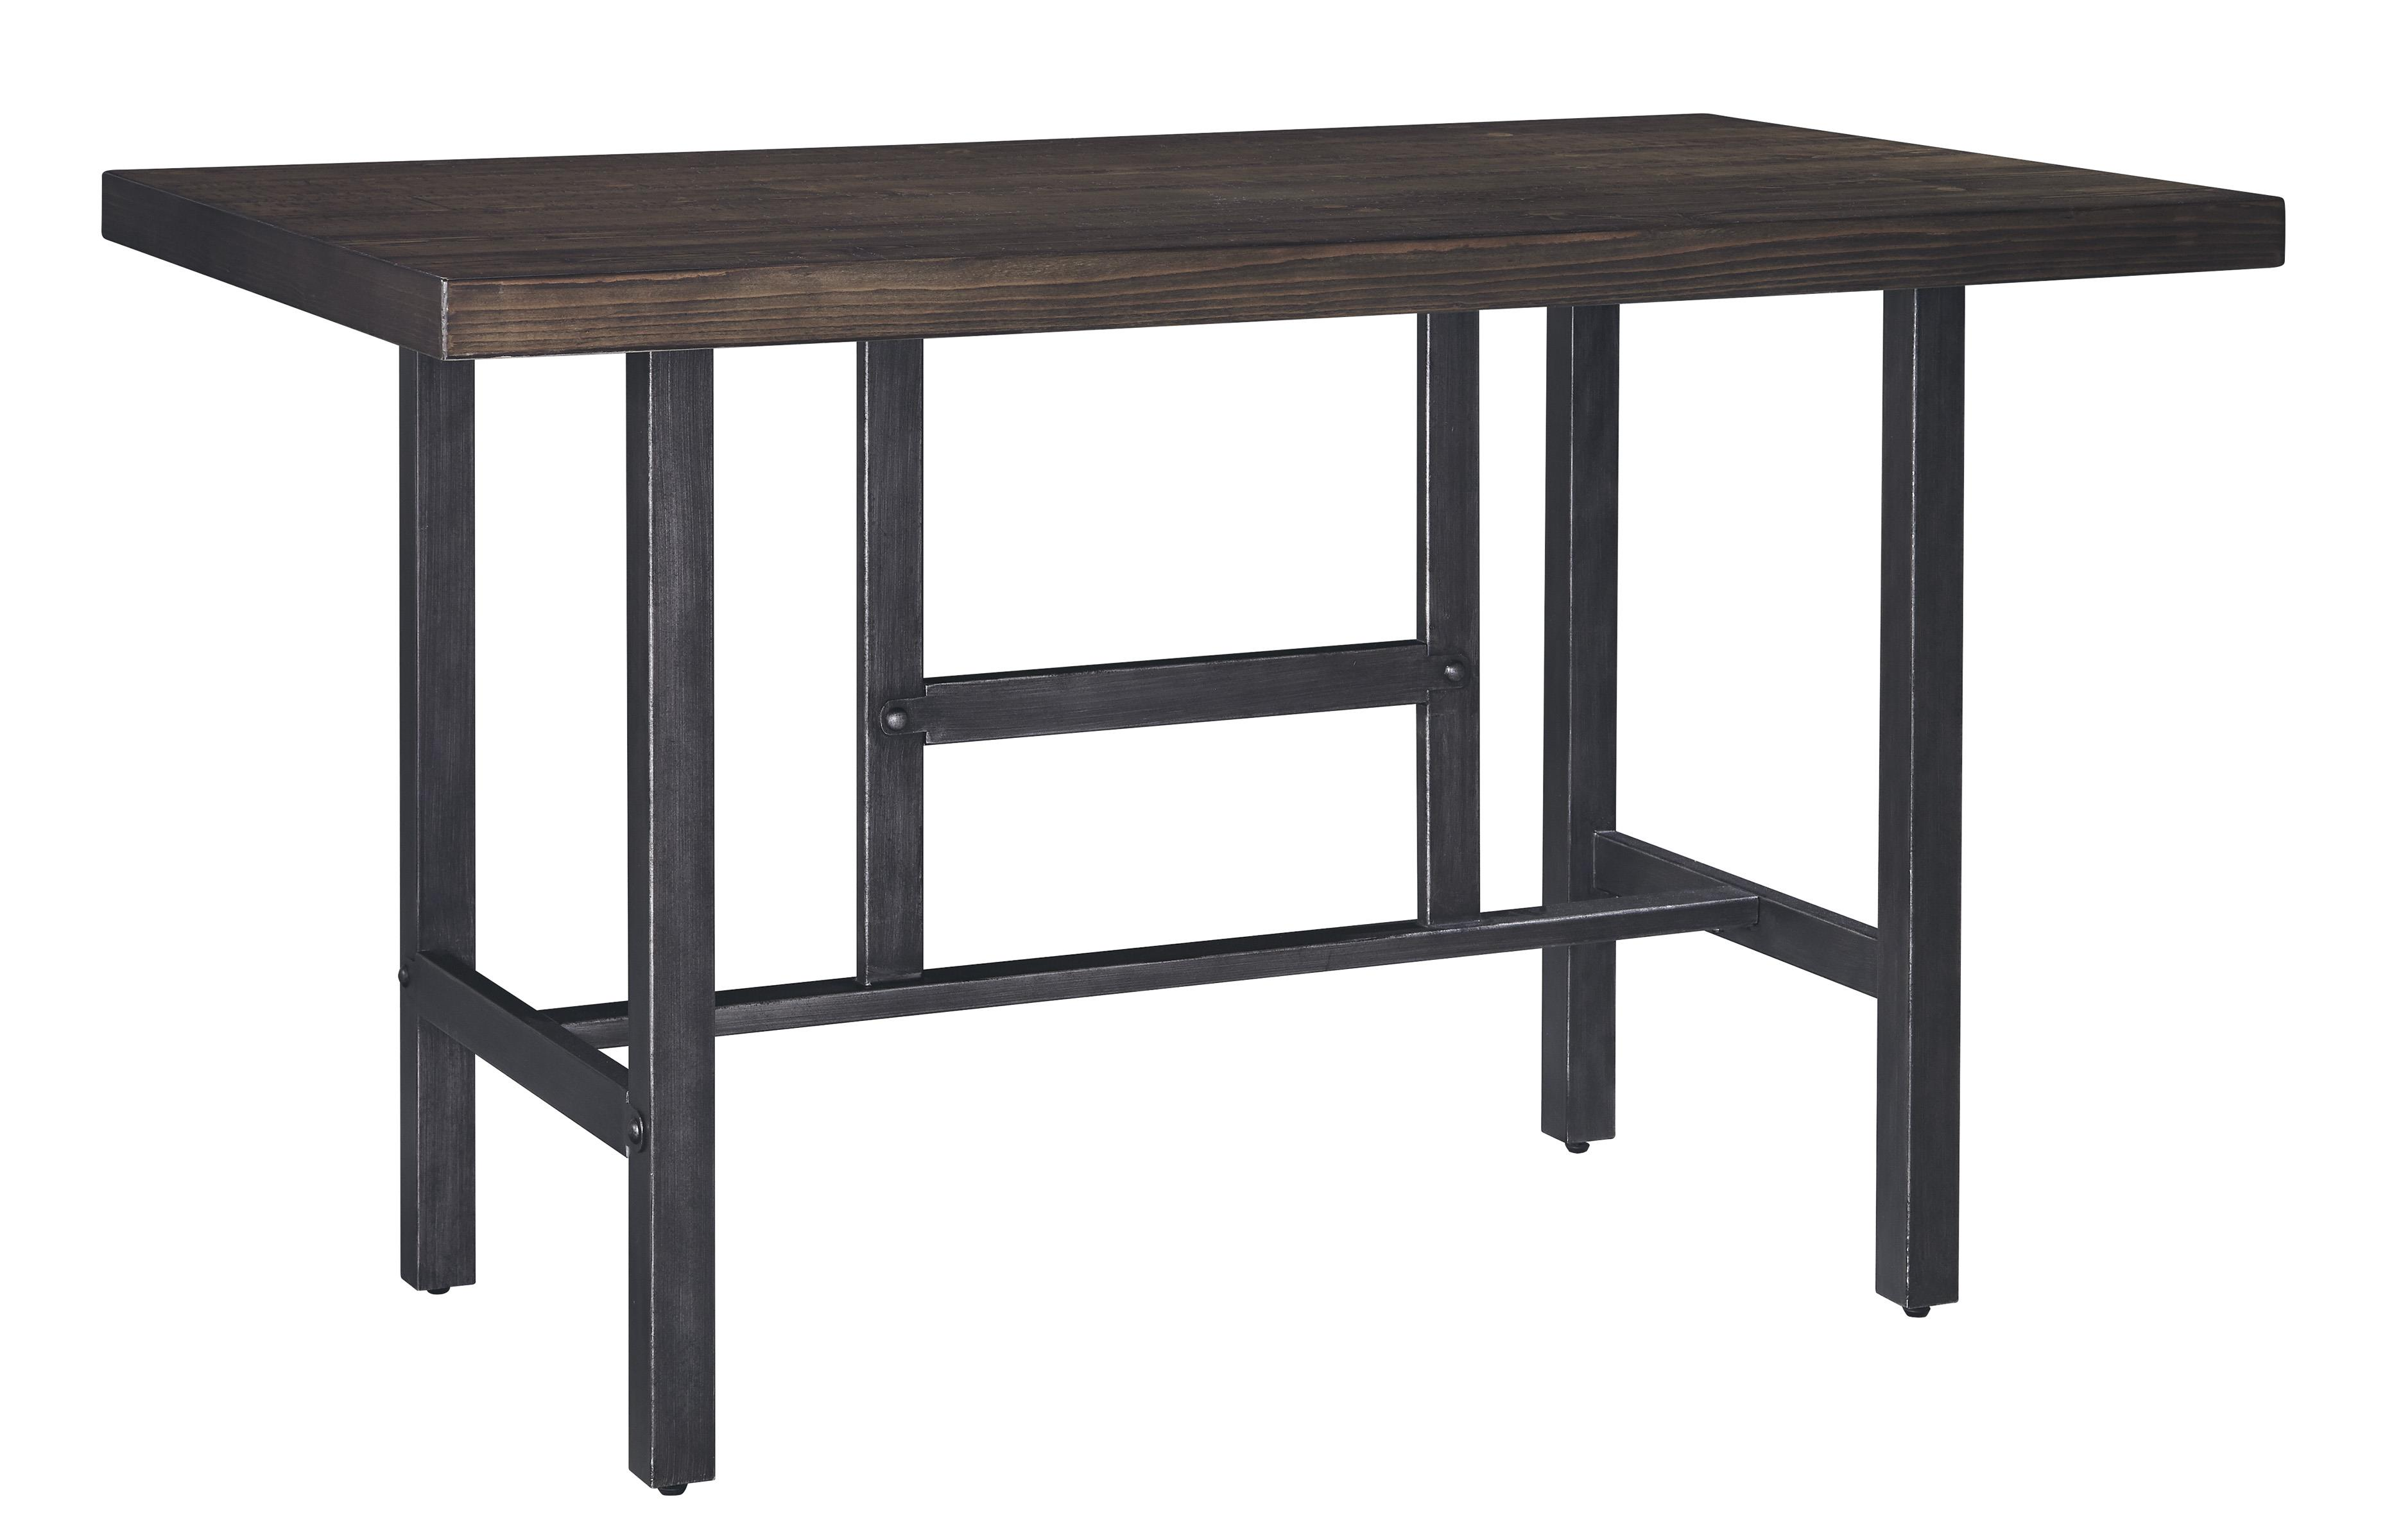 Signature Design By Ashley Kavara Rectangular Dining Room Counter Table W Pine Veneers And